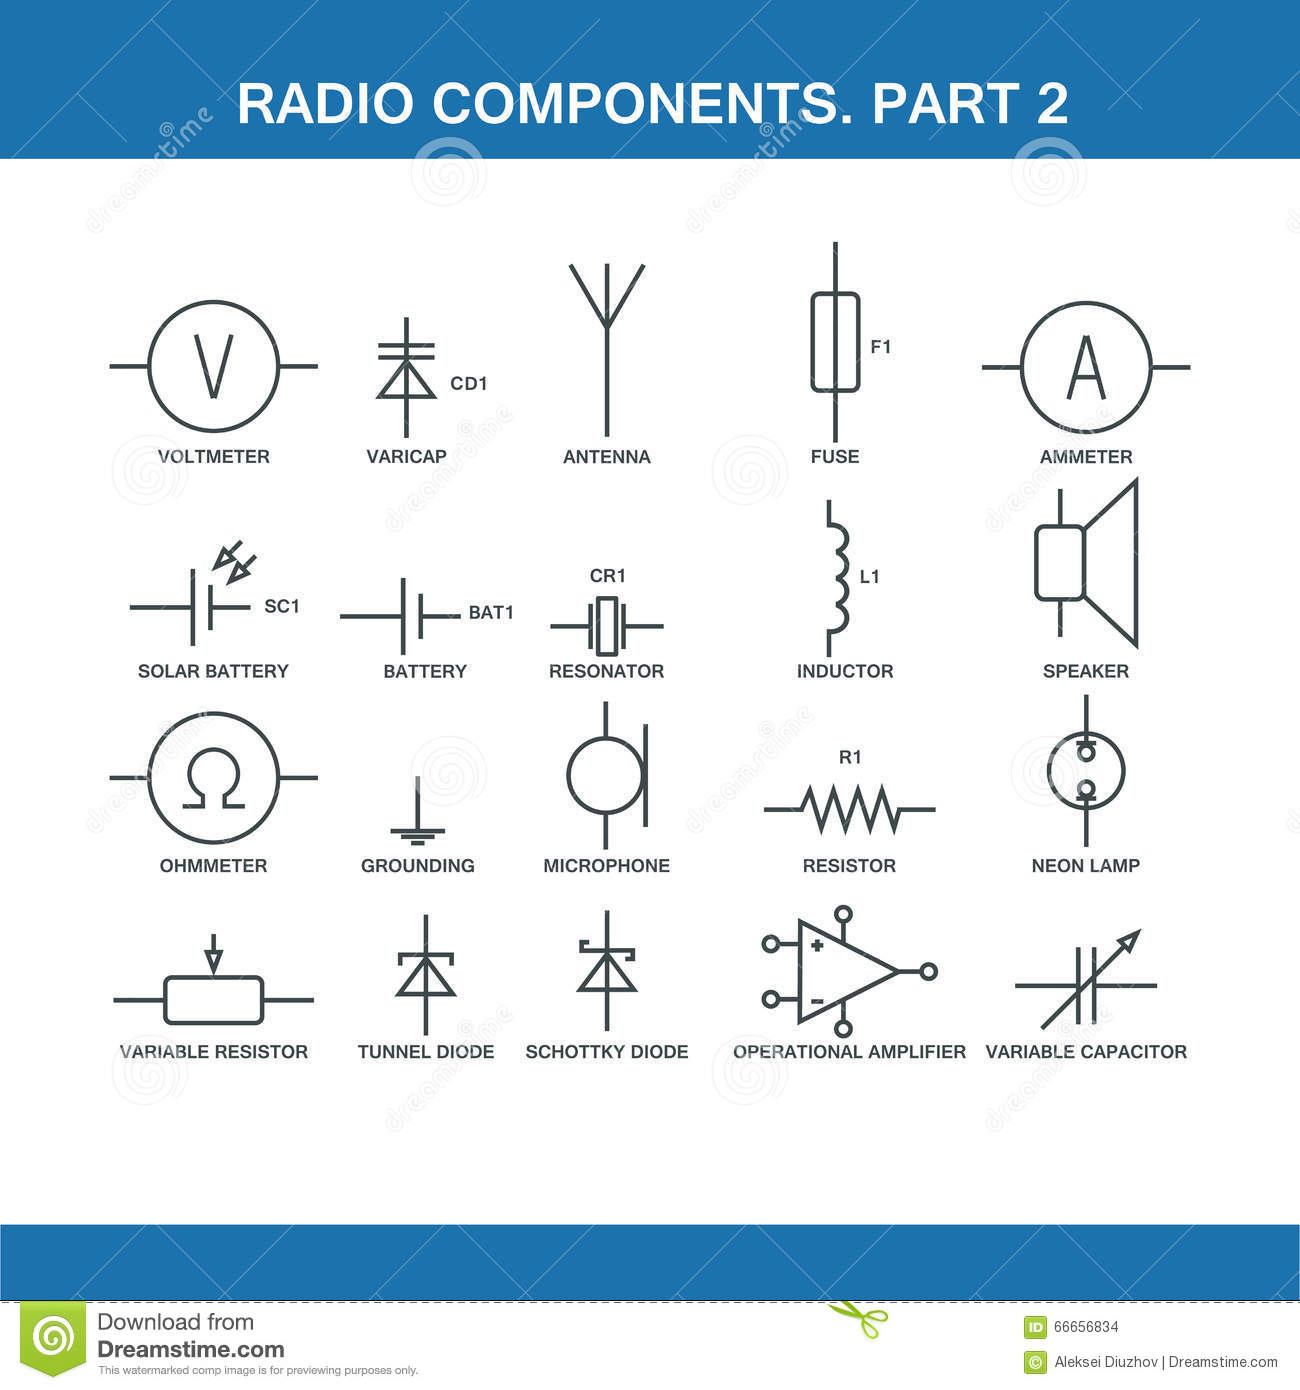 designation of components in the wiring diagram stock illustration designation of components in the wiring diagram